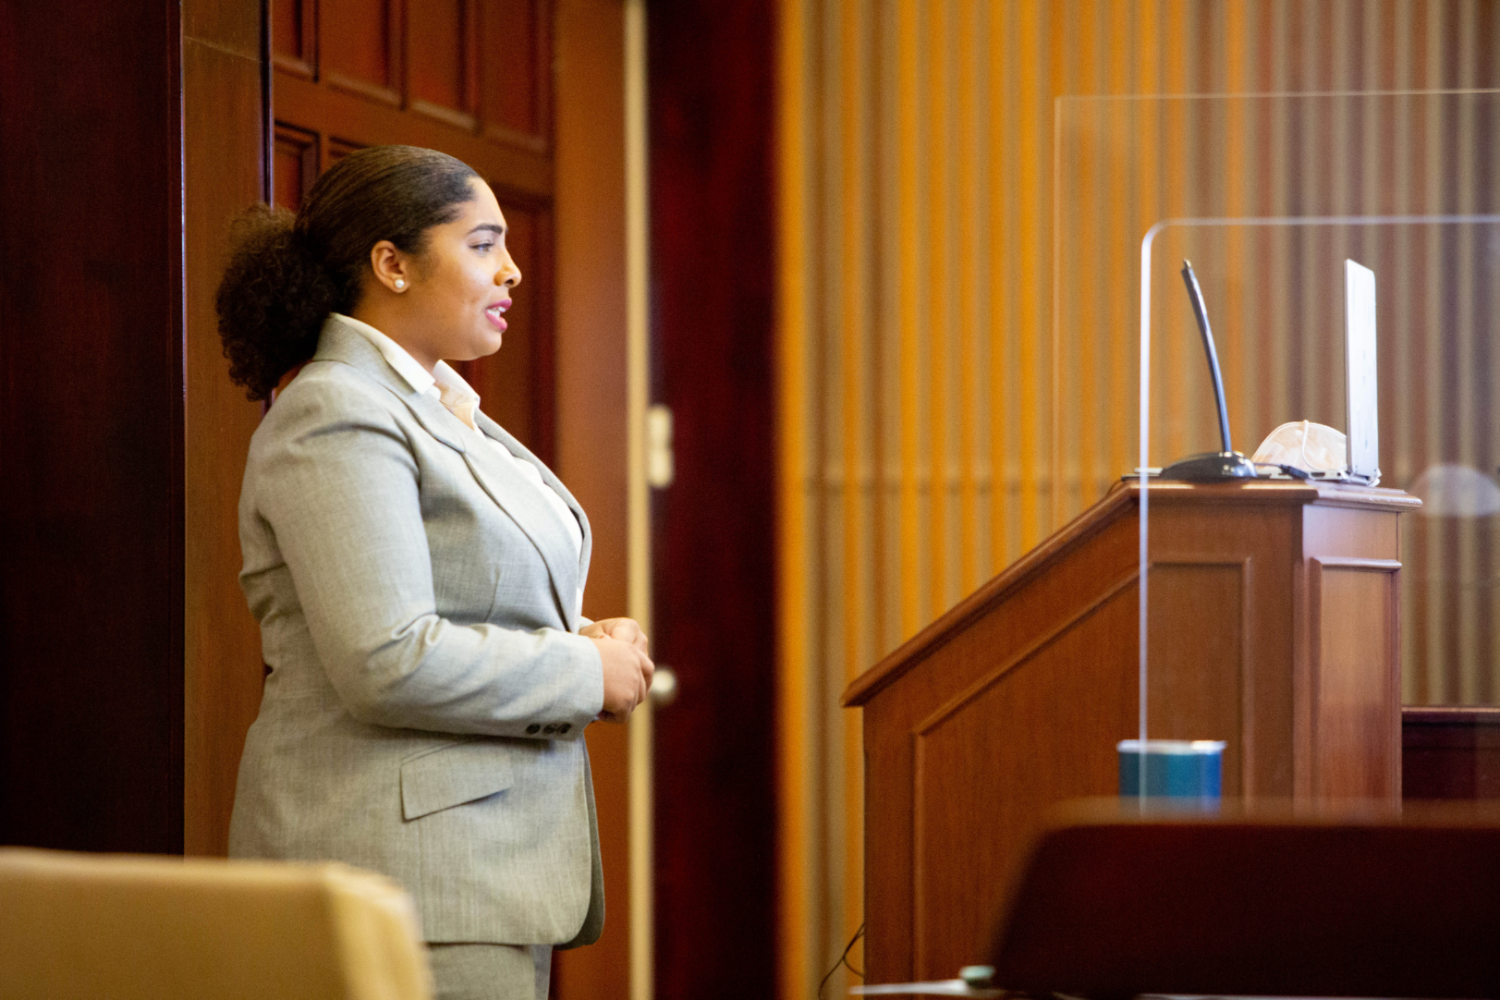 Dillard University Mock Trial Team Member Renee Simien